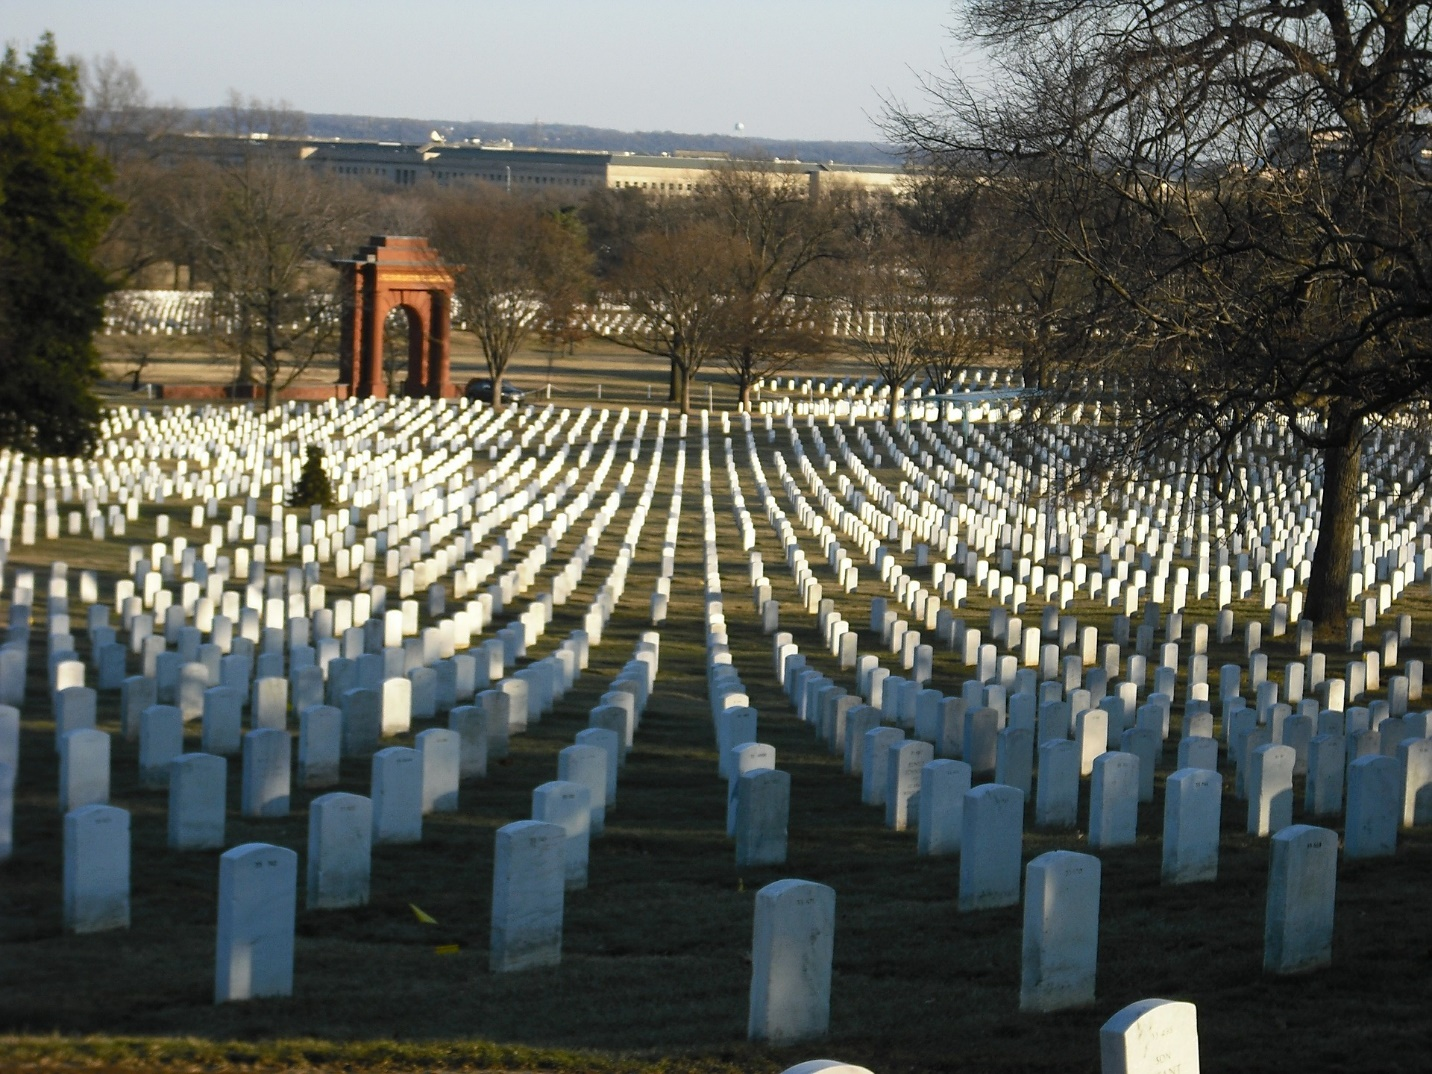 Arlington National Cemetery, Image by vcudnik from Pixabay